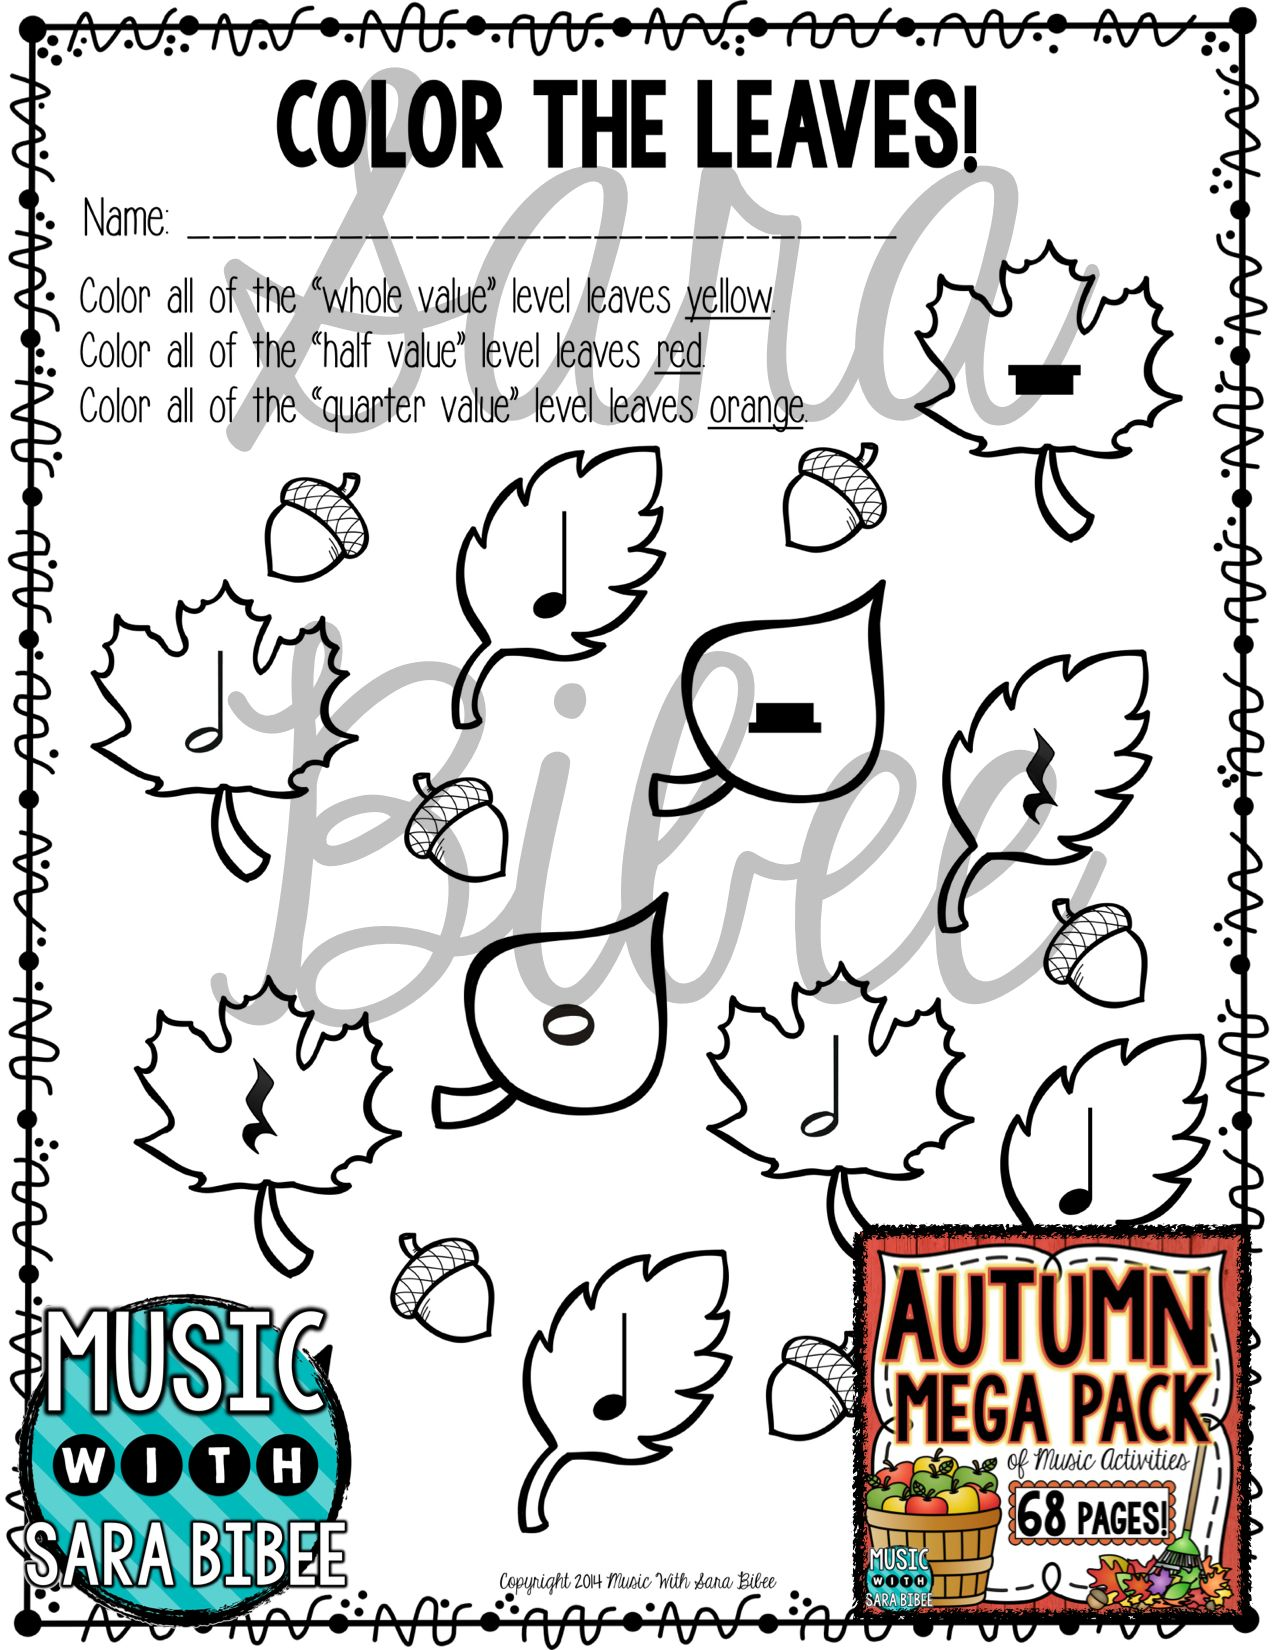 Autumn And Fall Mega Pack Of Music Worksheets With Images